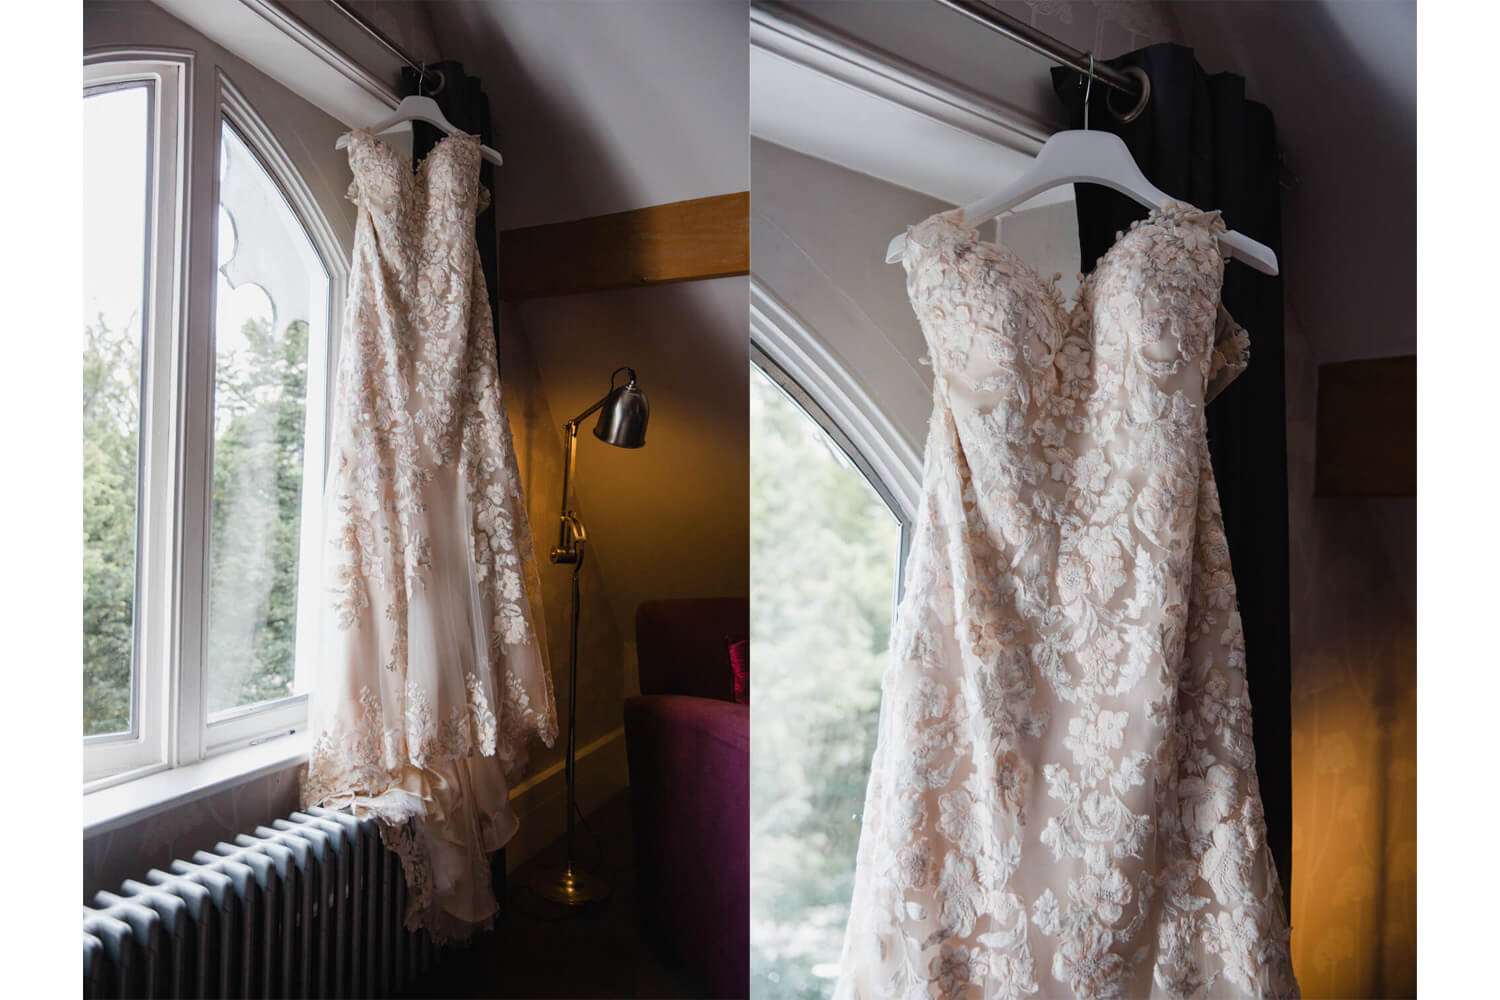 Photograph collage of wedding dress hanging in window in low light exposure